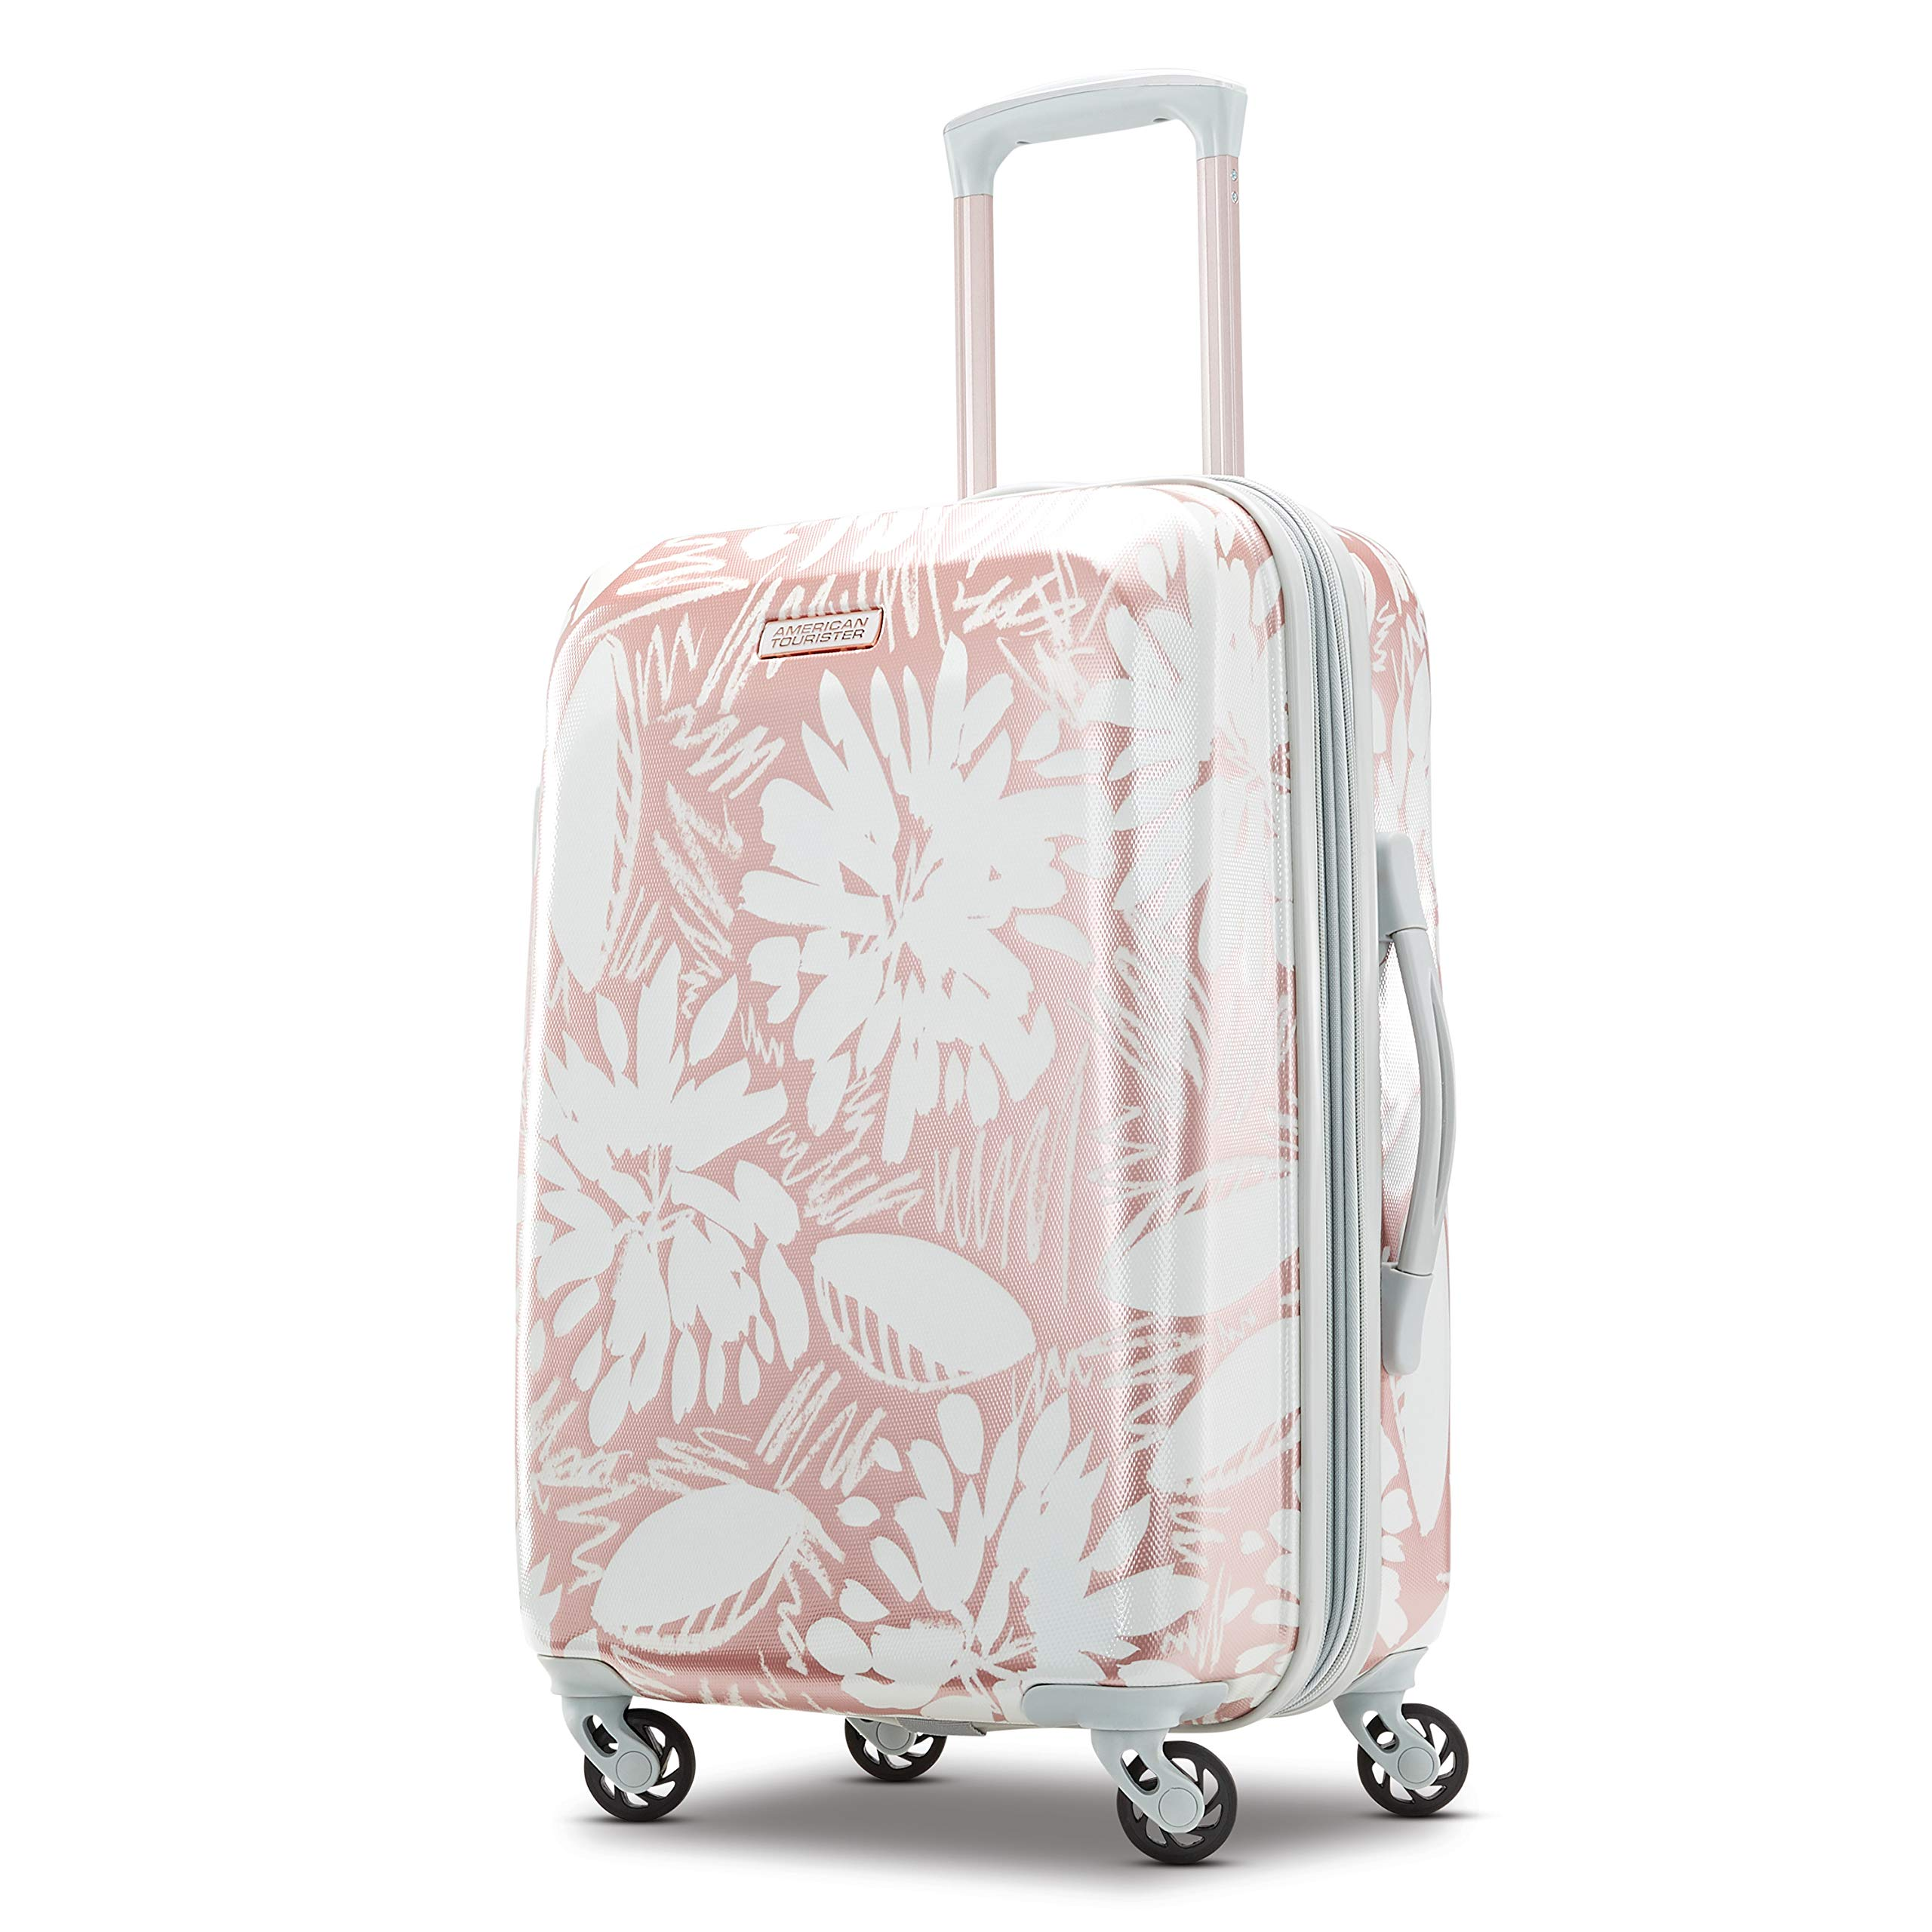 American Tourister Moonlight Hardside Expandable Carry On Luggage with Spinner Wheels, 21 Inch, Ascending Garden Rose Gold